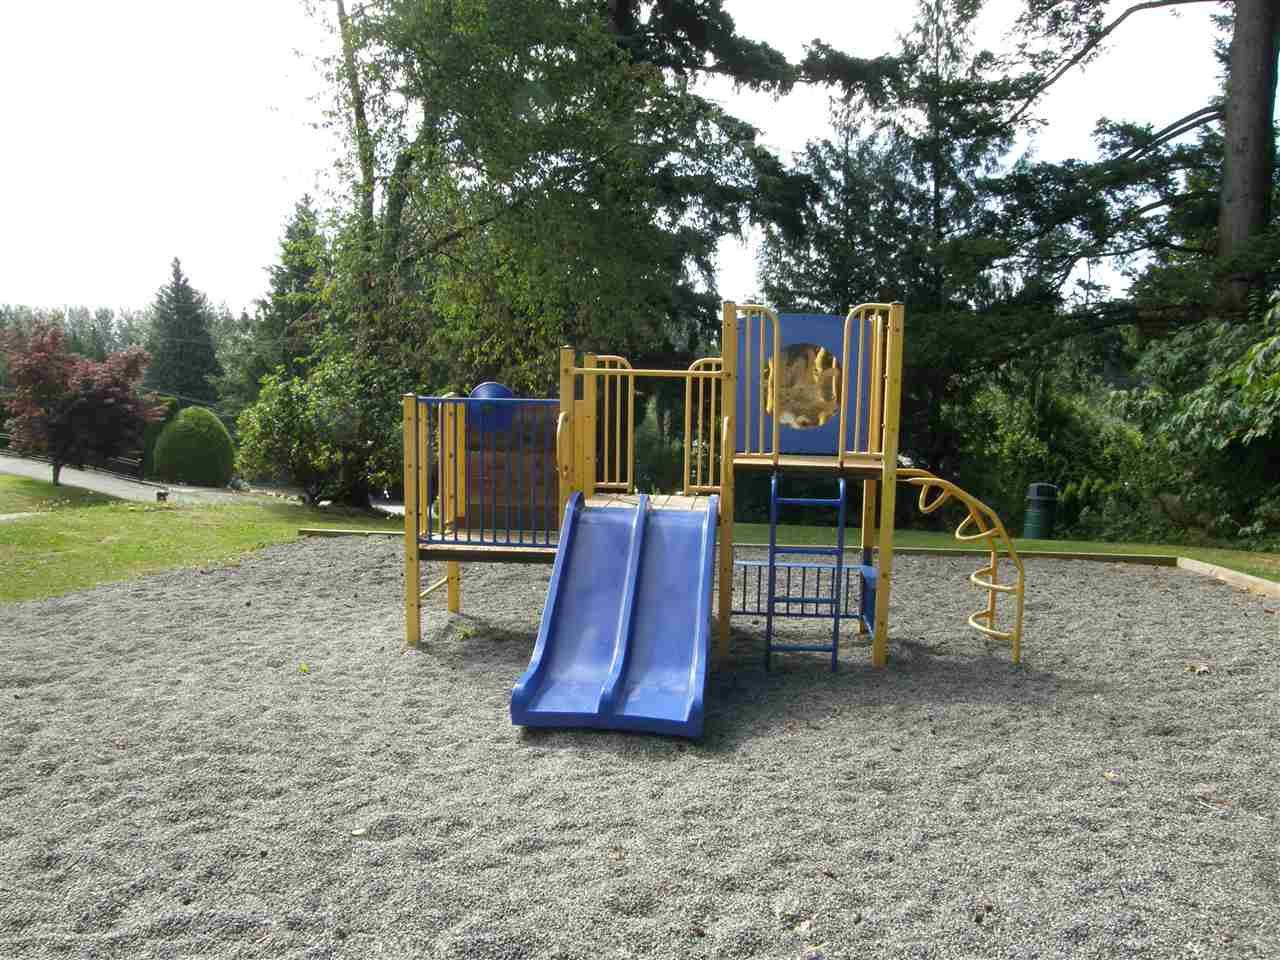 Photo 21: Photos: 1830 REEVES Place in Abbotsford: Central Abbotsford House for sale : MLS®# R2486642